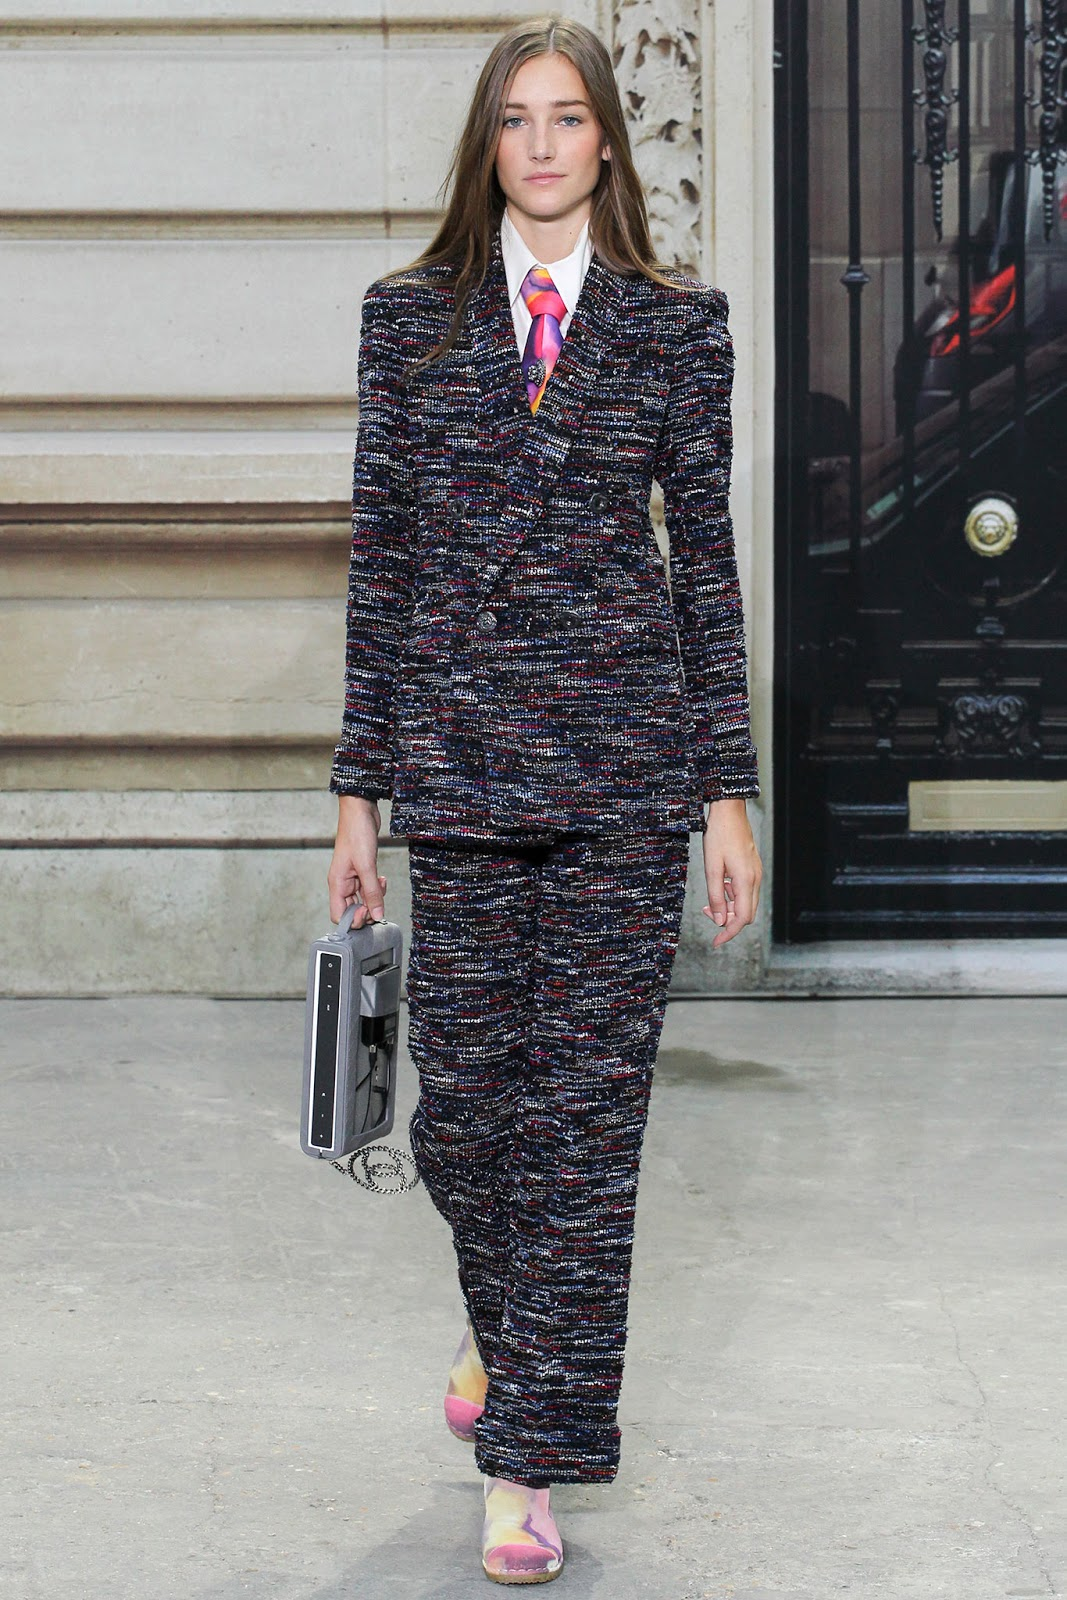 Chanel / Spring/Summer 2015 trends / trouser suit / styling tips and outfit inspiration / via fashioned by love british fashion blog